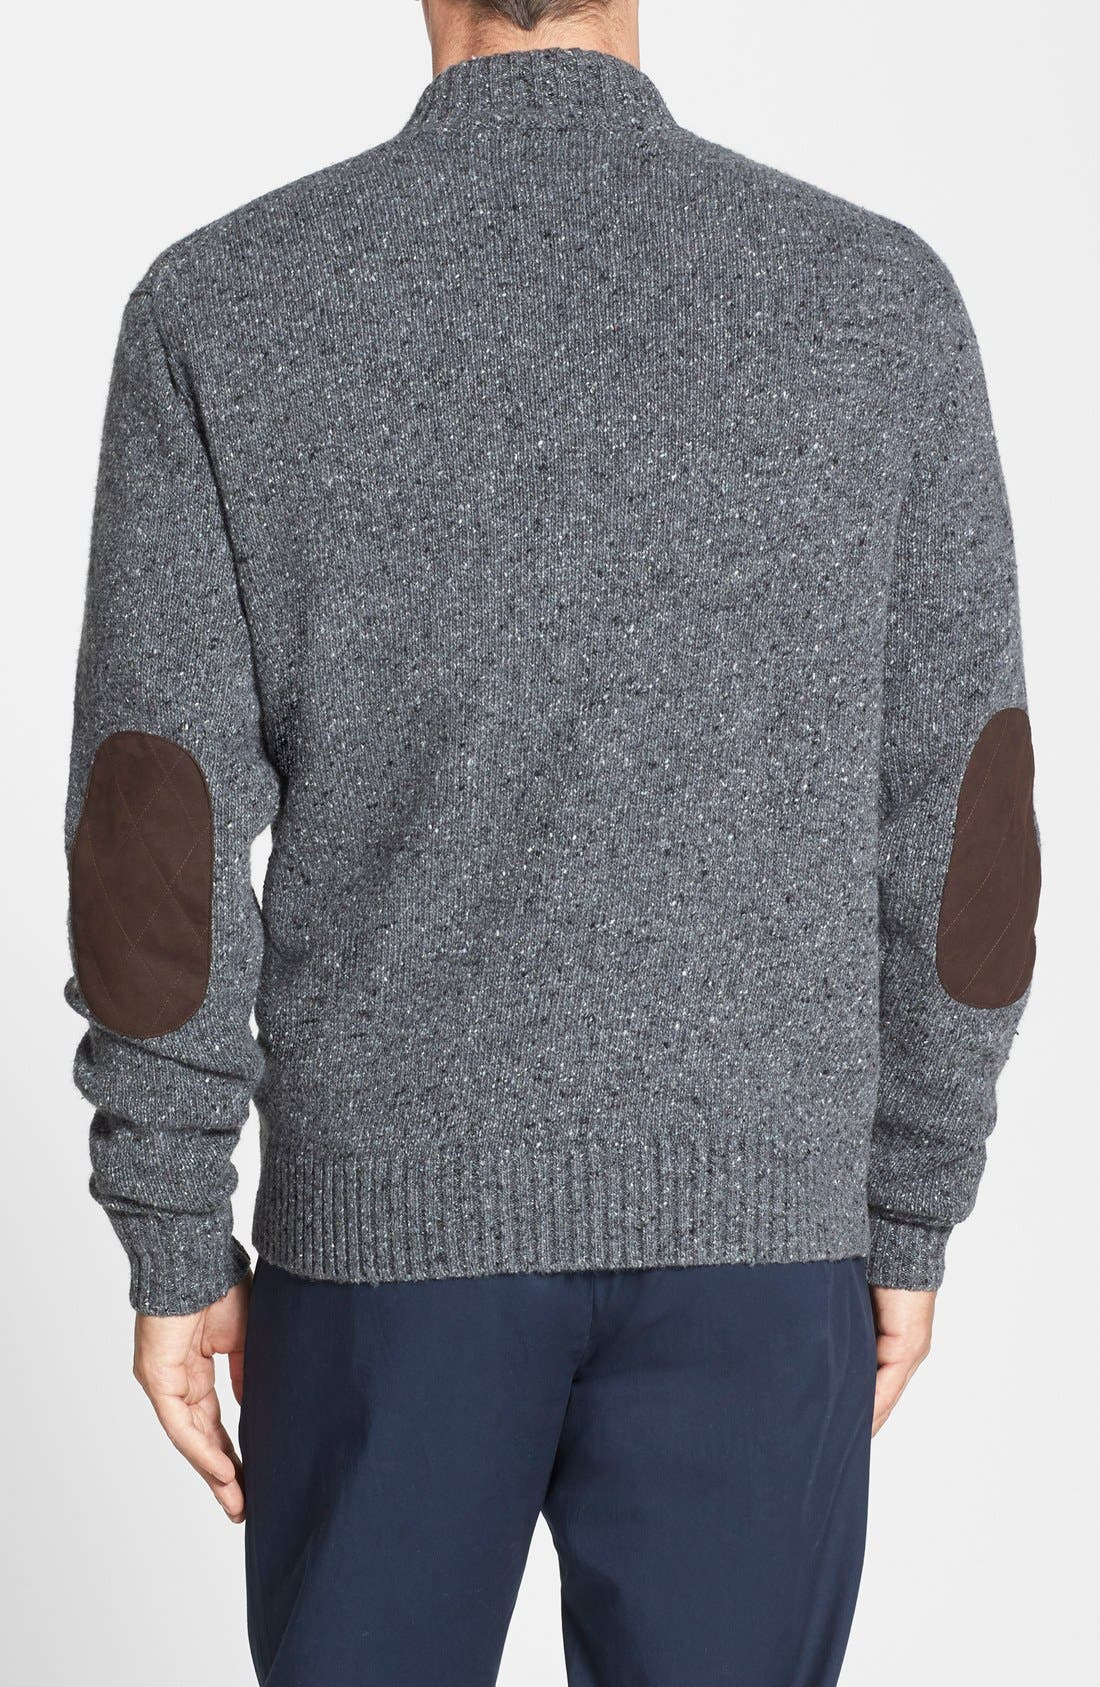 Donegal Italian Wool Blend Pullover,                             Alternate thumbnail 4, color,                             022